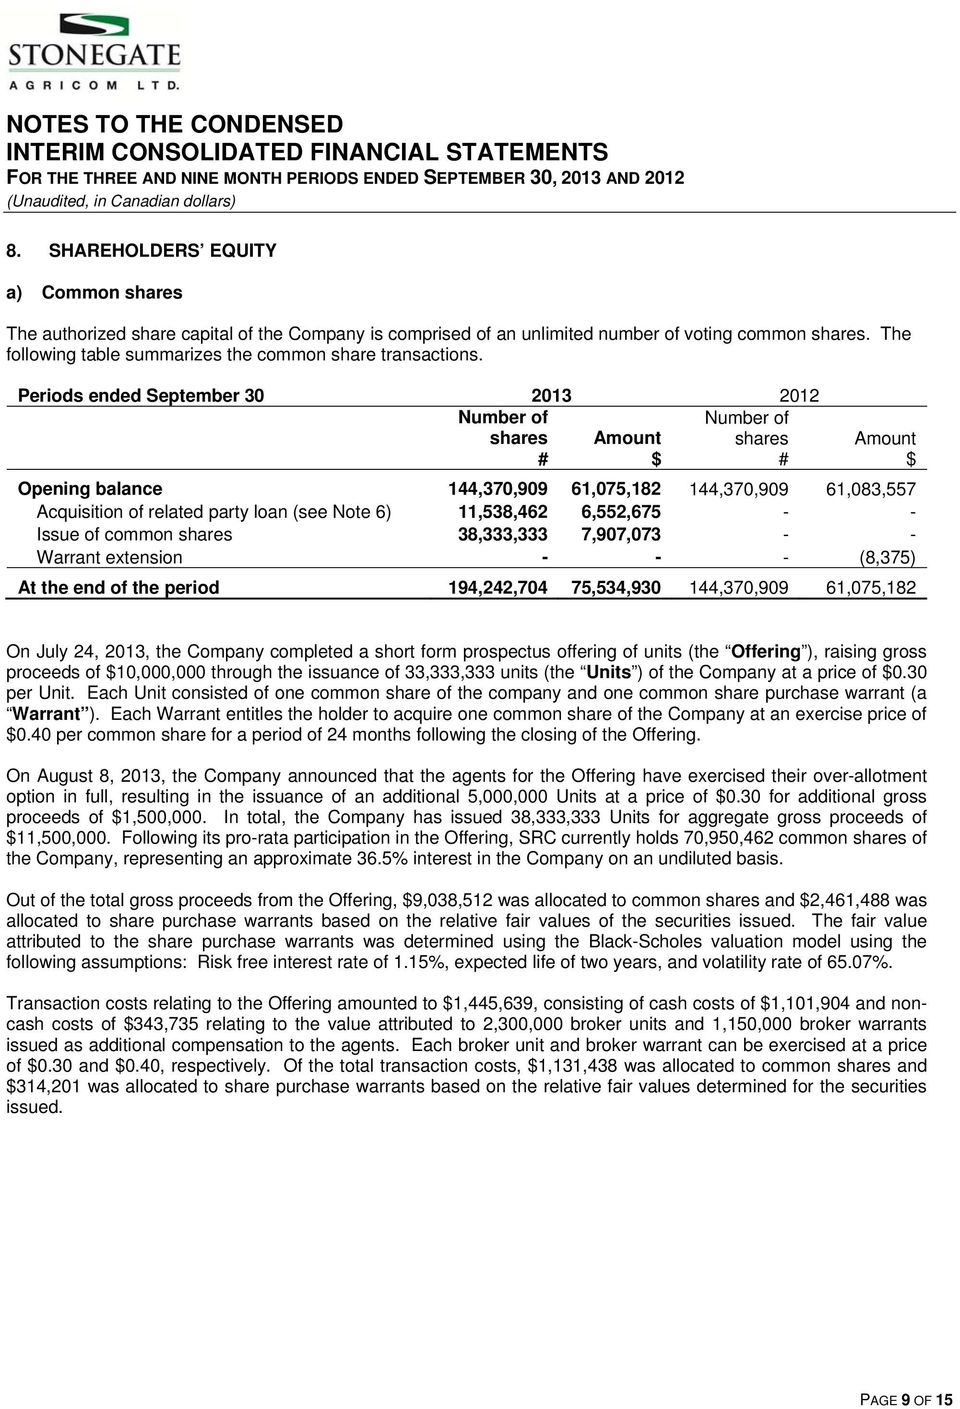 Periods ended 2013 2012 Number of Number of shares Amount shares Amount # $ # $ Opening balance 144,370,909 61,075,182 144,370,909 61,083,557 Acquisition of related party loan (see Note 6) 11,538,462